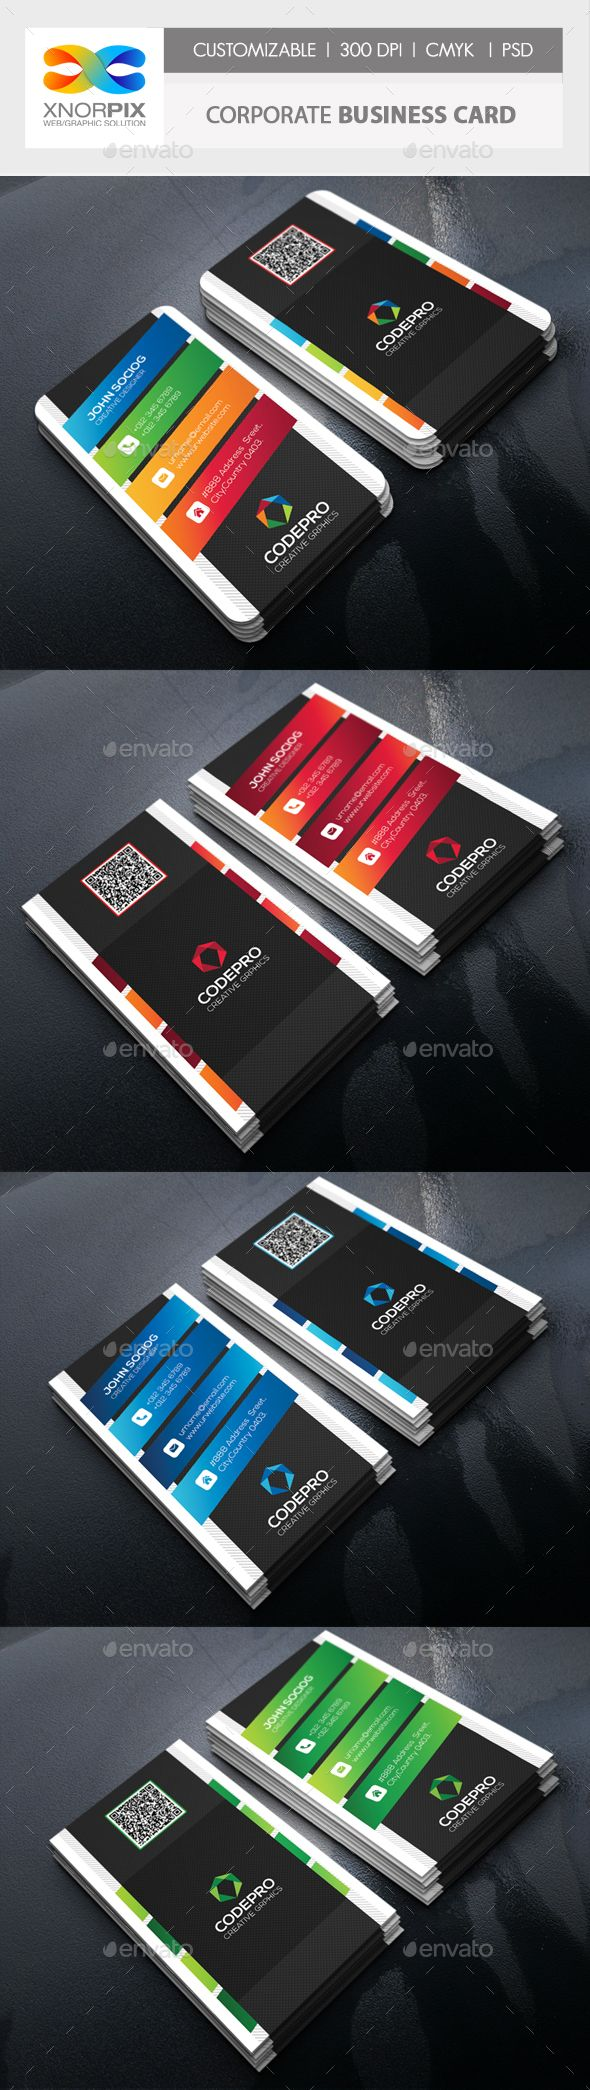 #Corporate #Business Card - Corporate Business C#ards Download here: https://graphicriver.net/item/corporate-business-card/18282391?ref=alena994